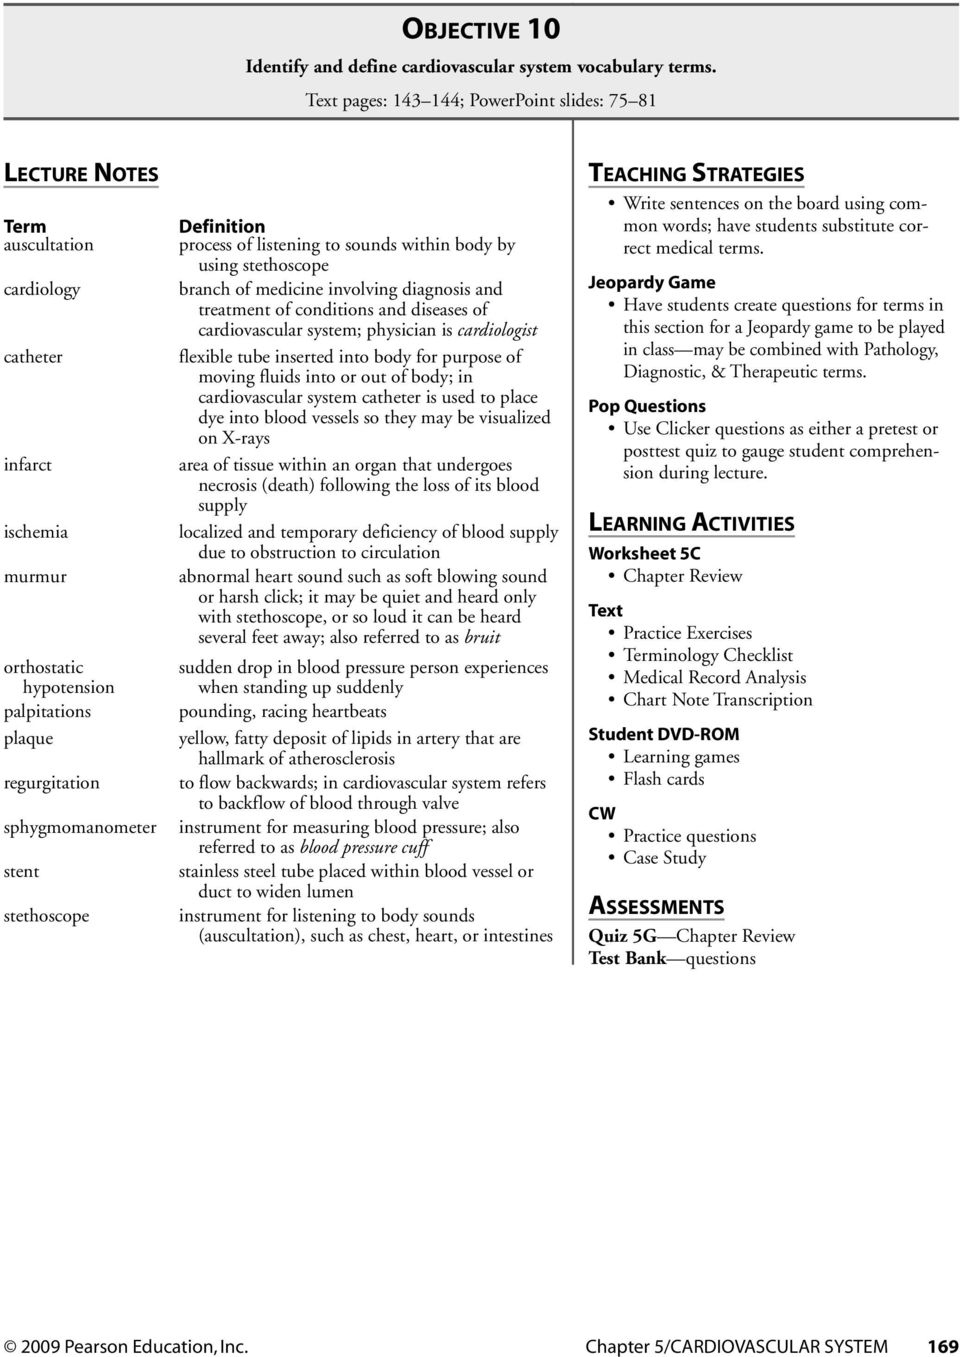 C Hapter 5 Cardiovascular System Chapter Contents Media Library